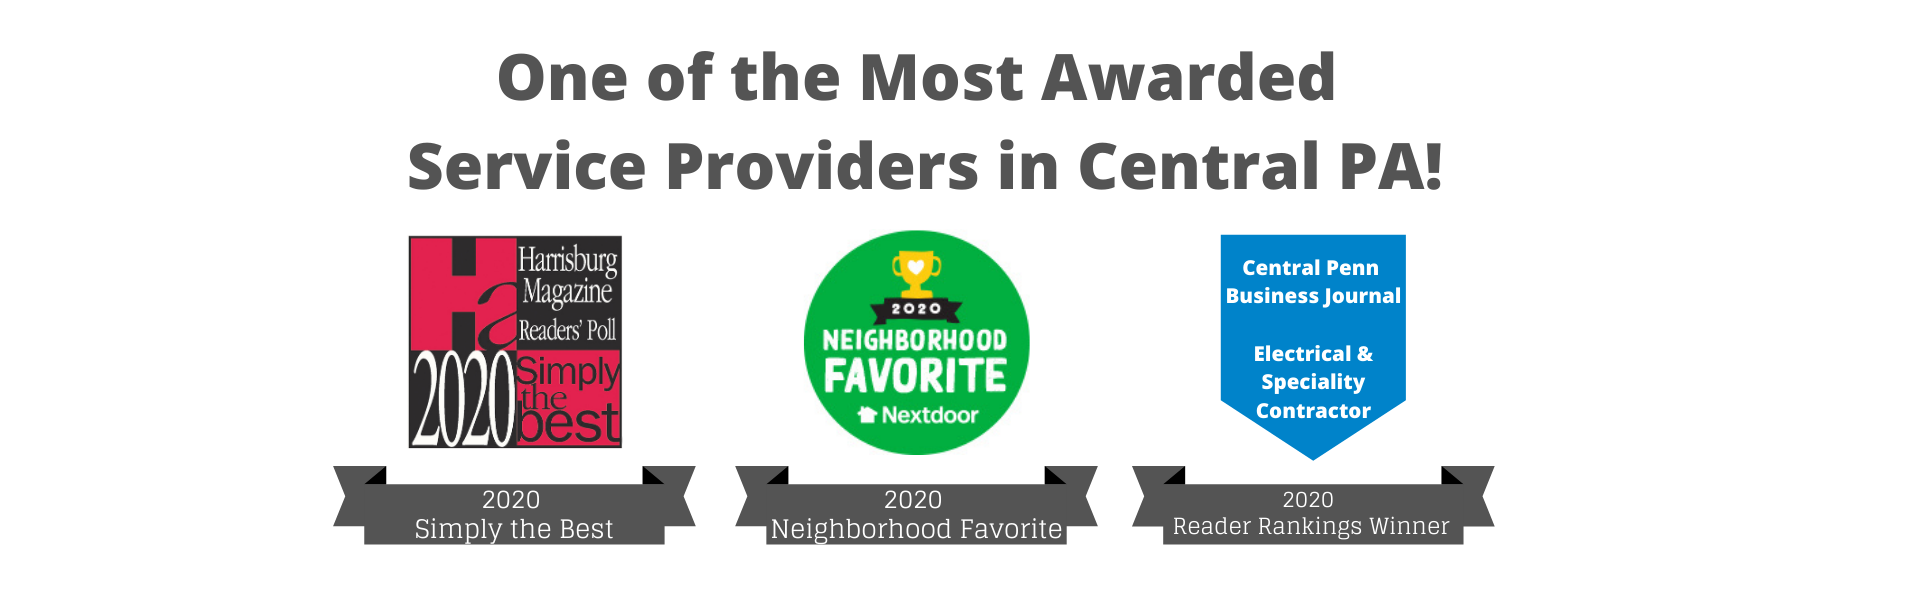 One of the most awarded service providers in central PA - 3 awards Zimmerman has won